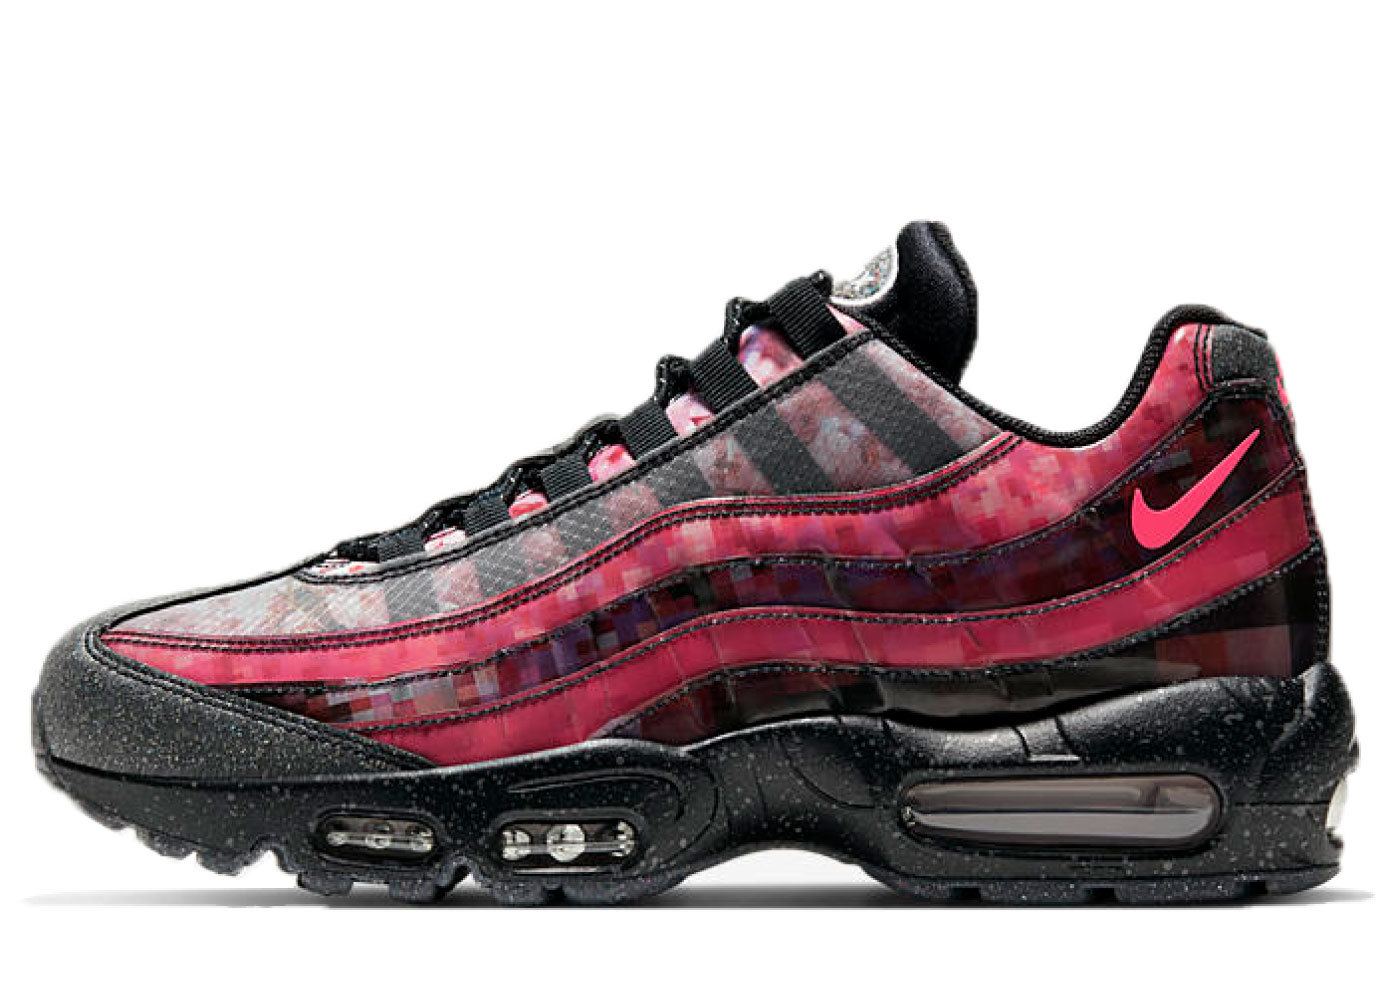 Nike Air Max 95 Cherry Blossomの写真